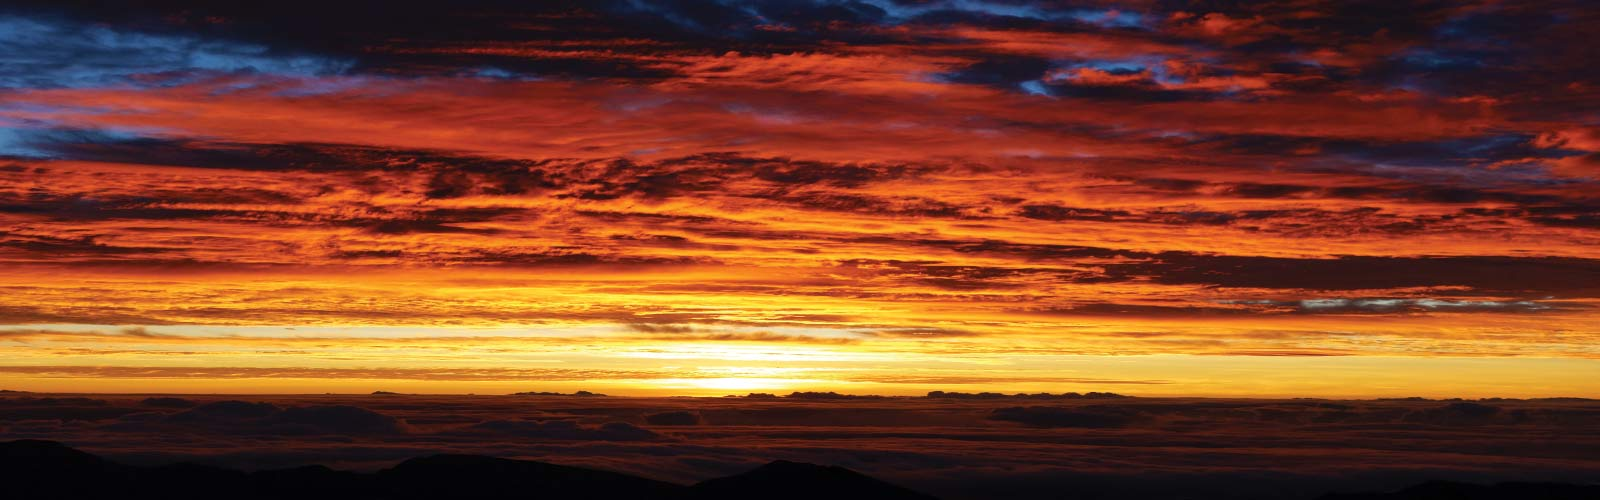 Tips for Enjoying the Haleakalā Sunrise – Maui